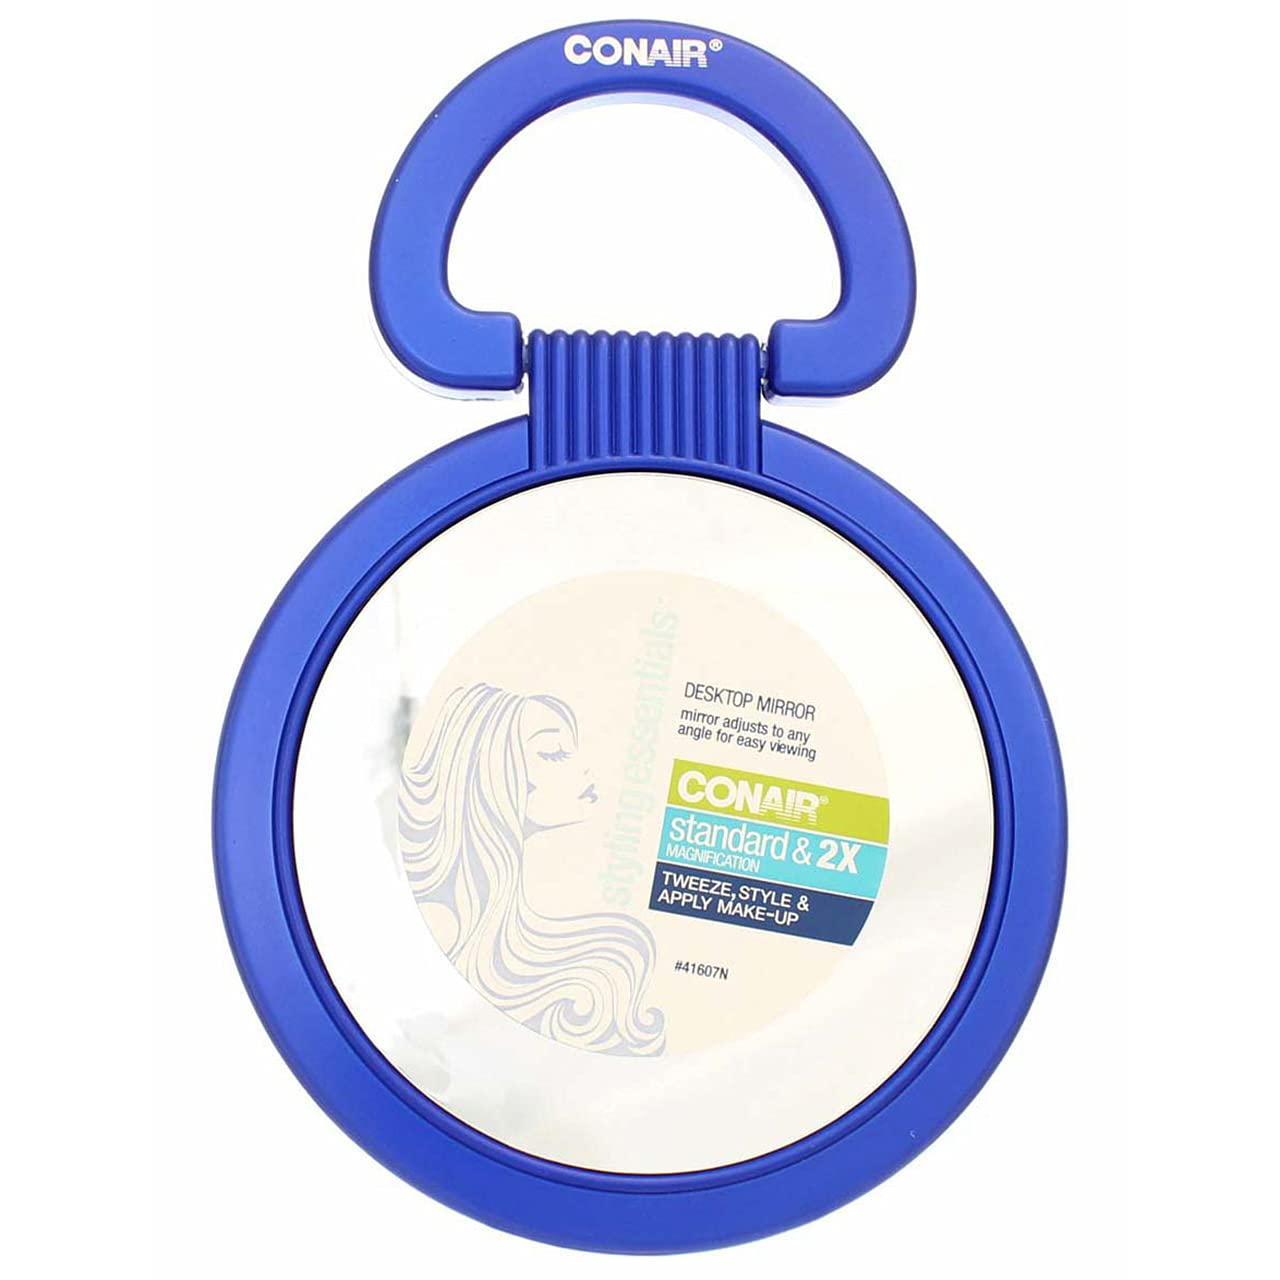 Max 90% OFF Conair Round Stand Max 90% OFF Handheld Mirror or